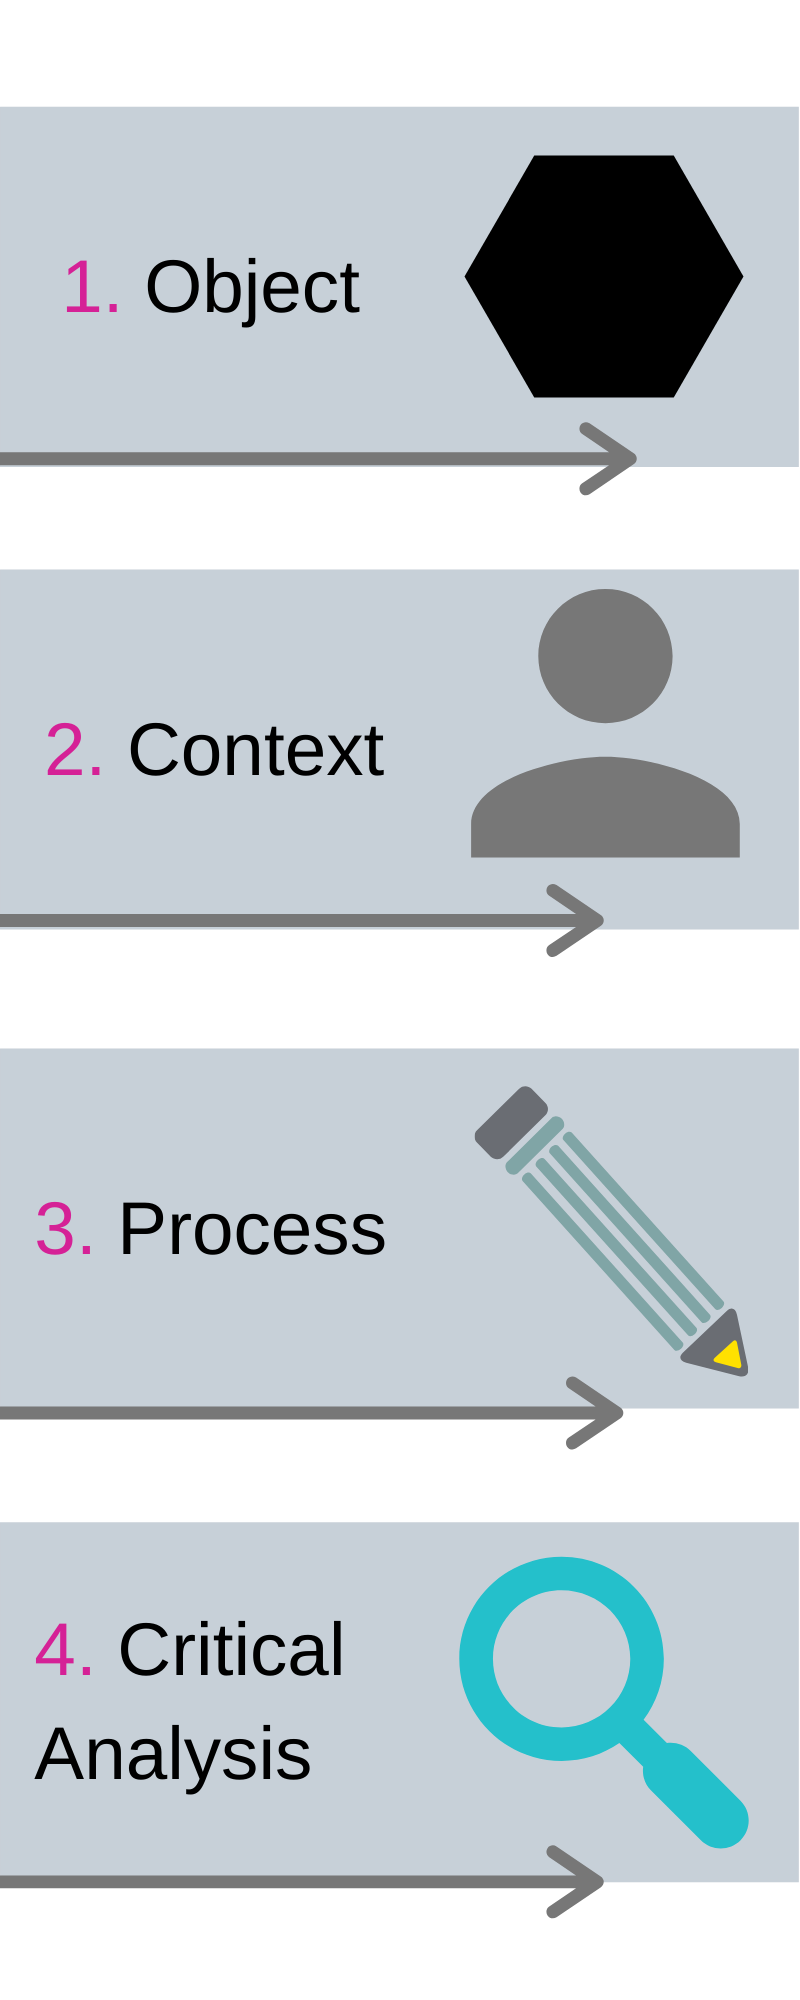 Image to show areas of object, context, process and critical analysis.